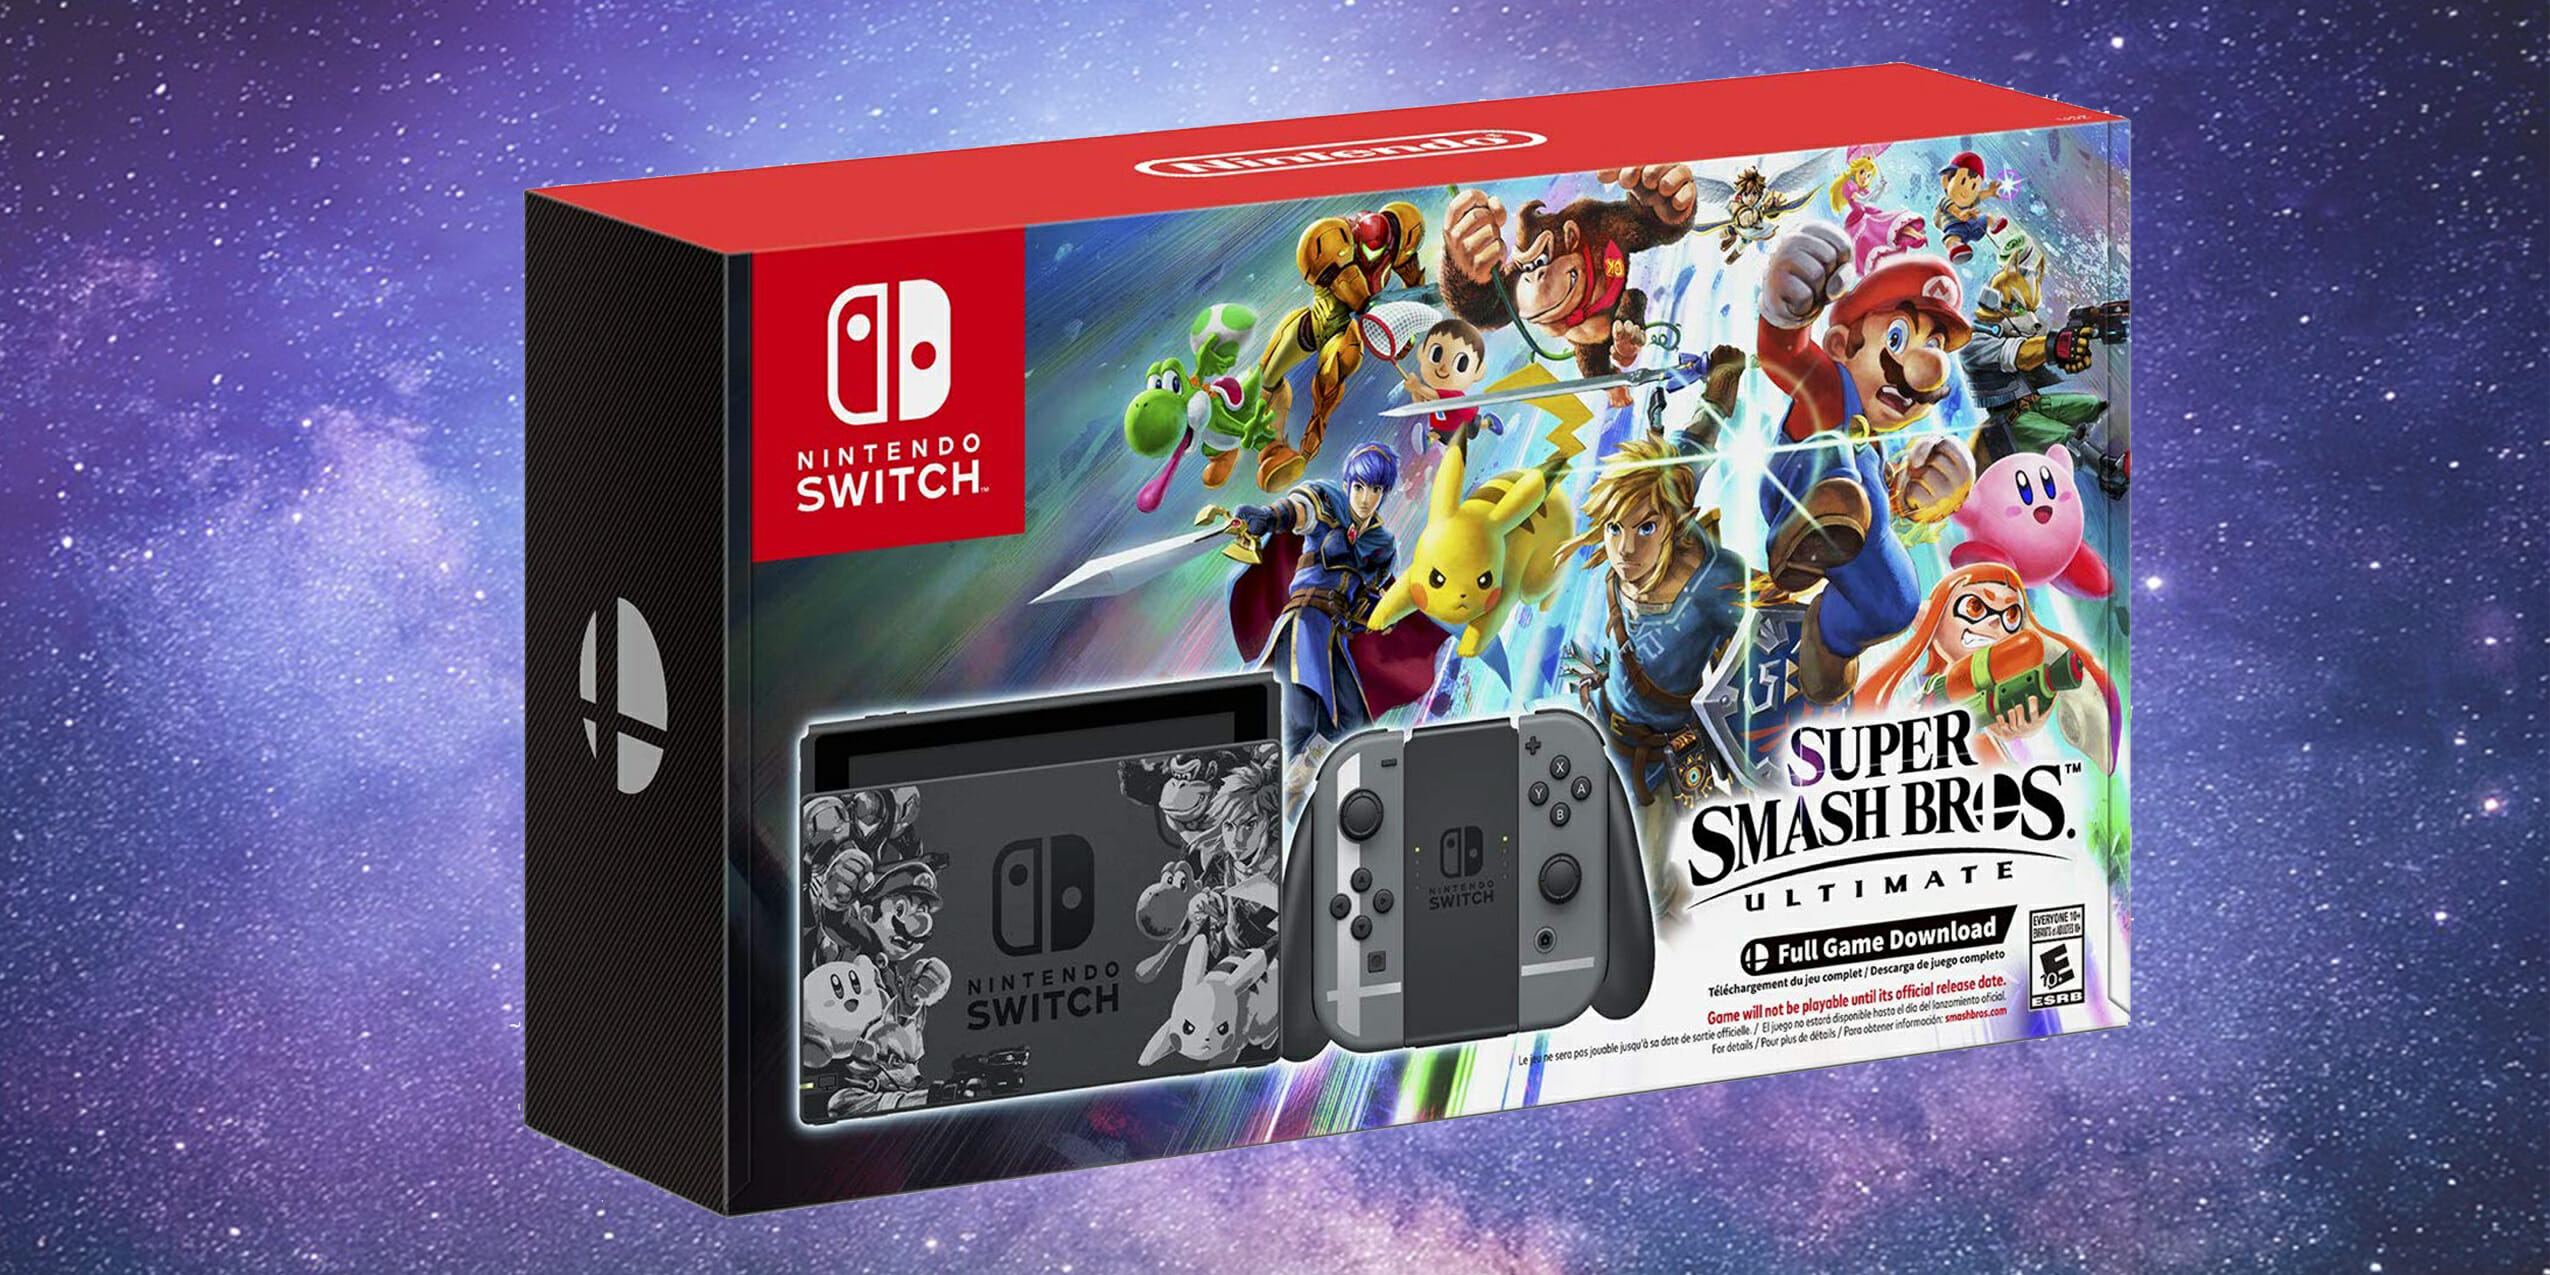 Smash Bros Switch Bundle Lets New Fans Jump On The